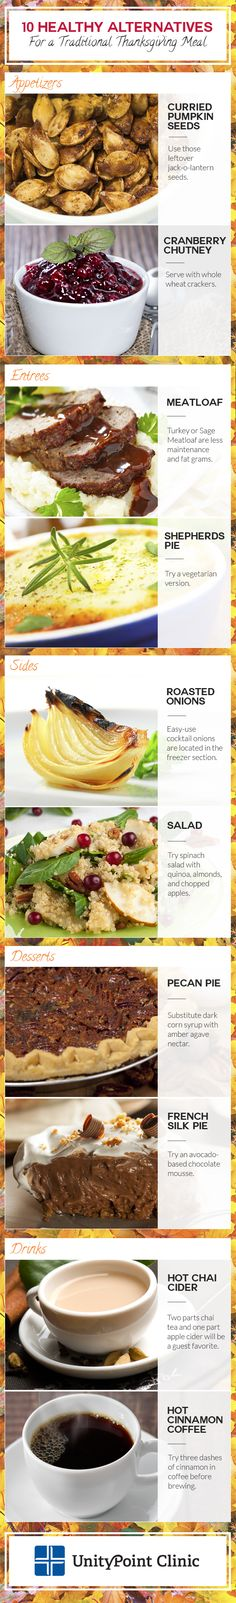 Having a healthy Thanksgiving meal is easy with these healthy alternatives from UnityPoint Clinic!